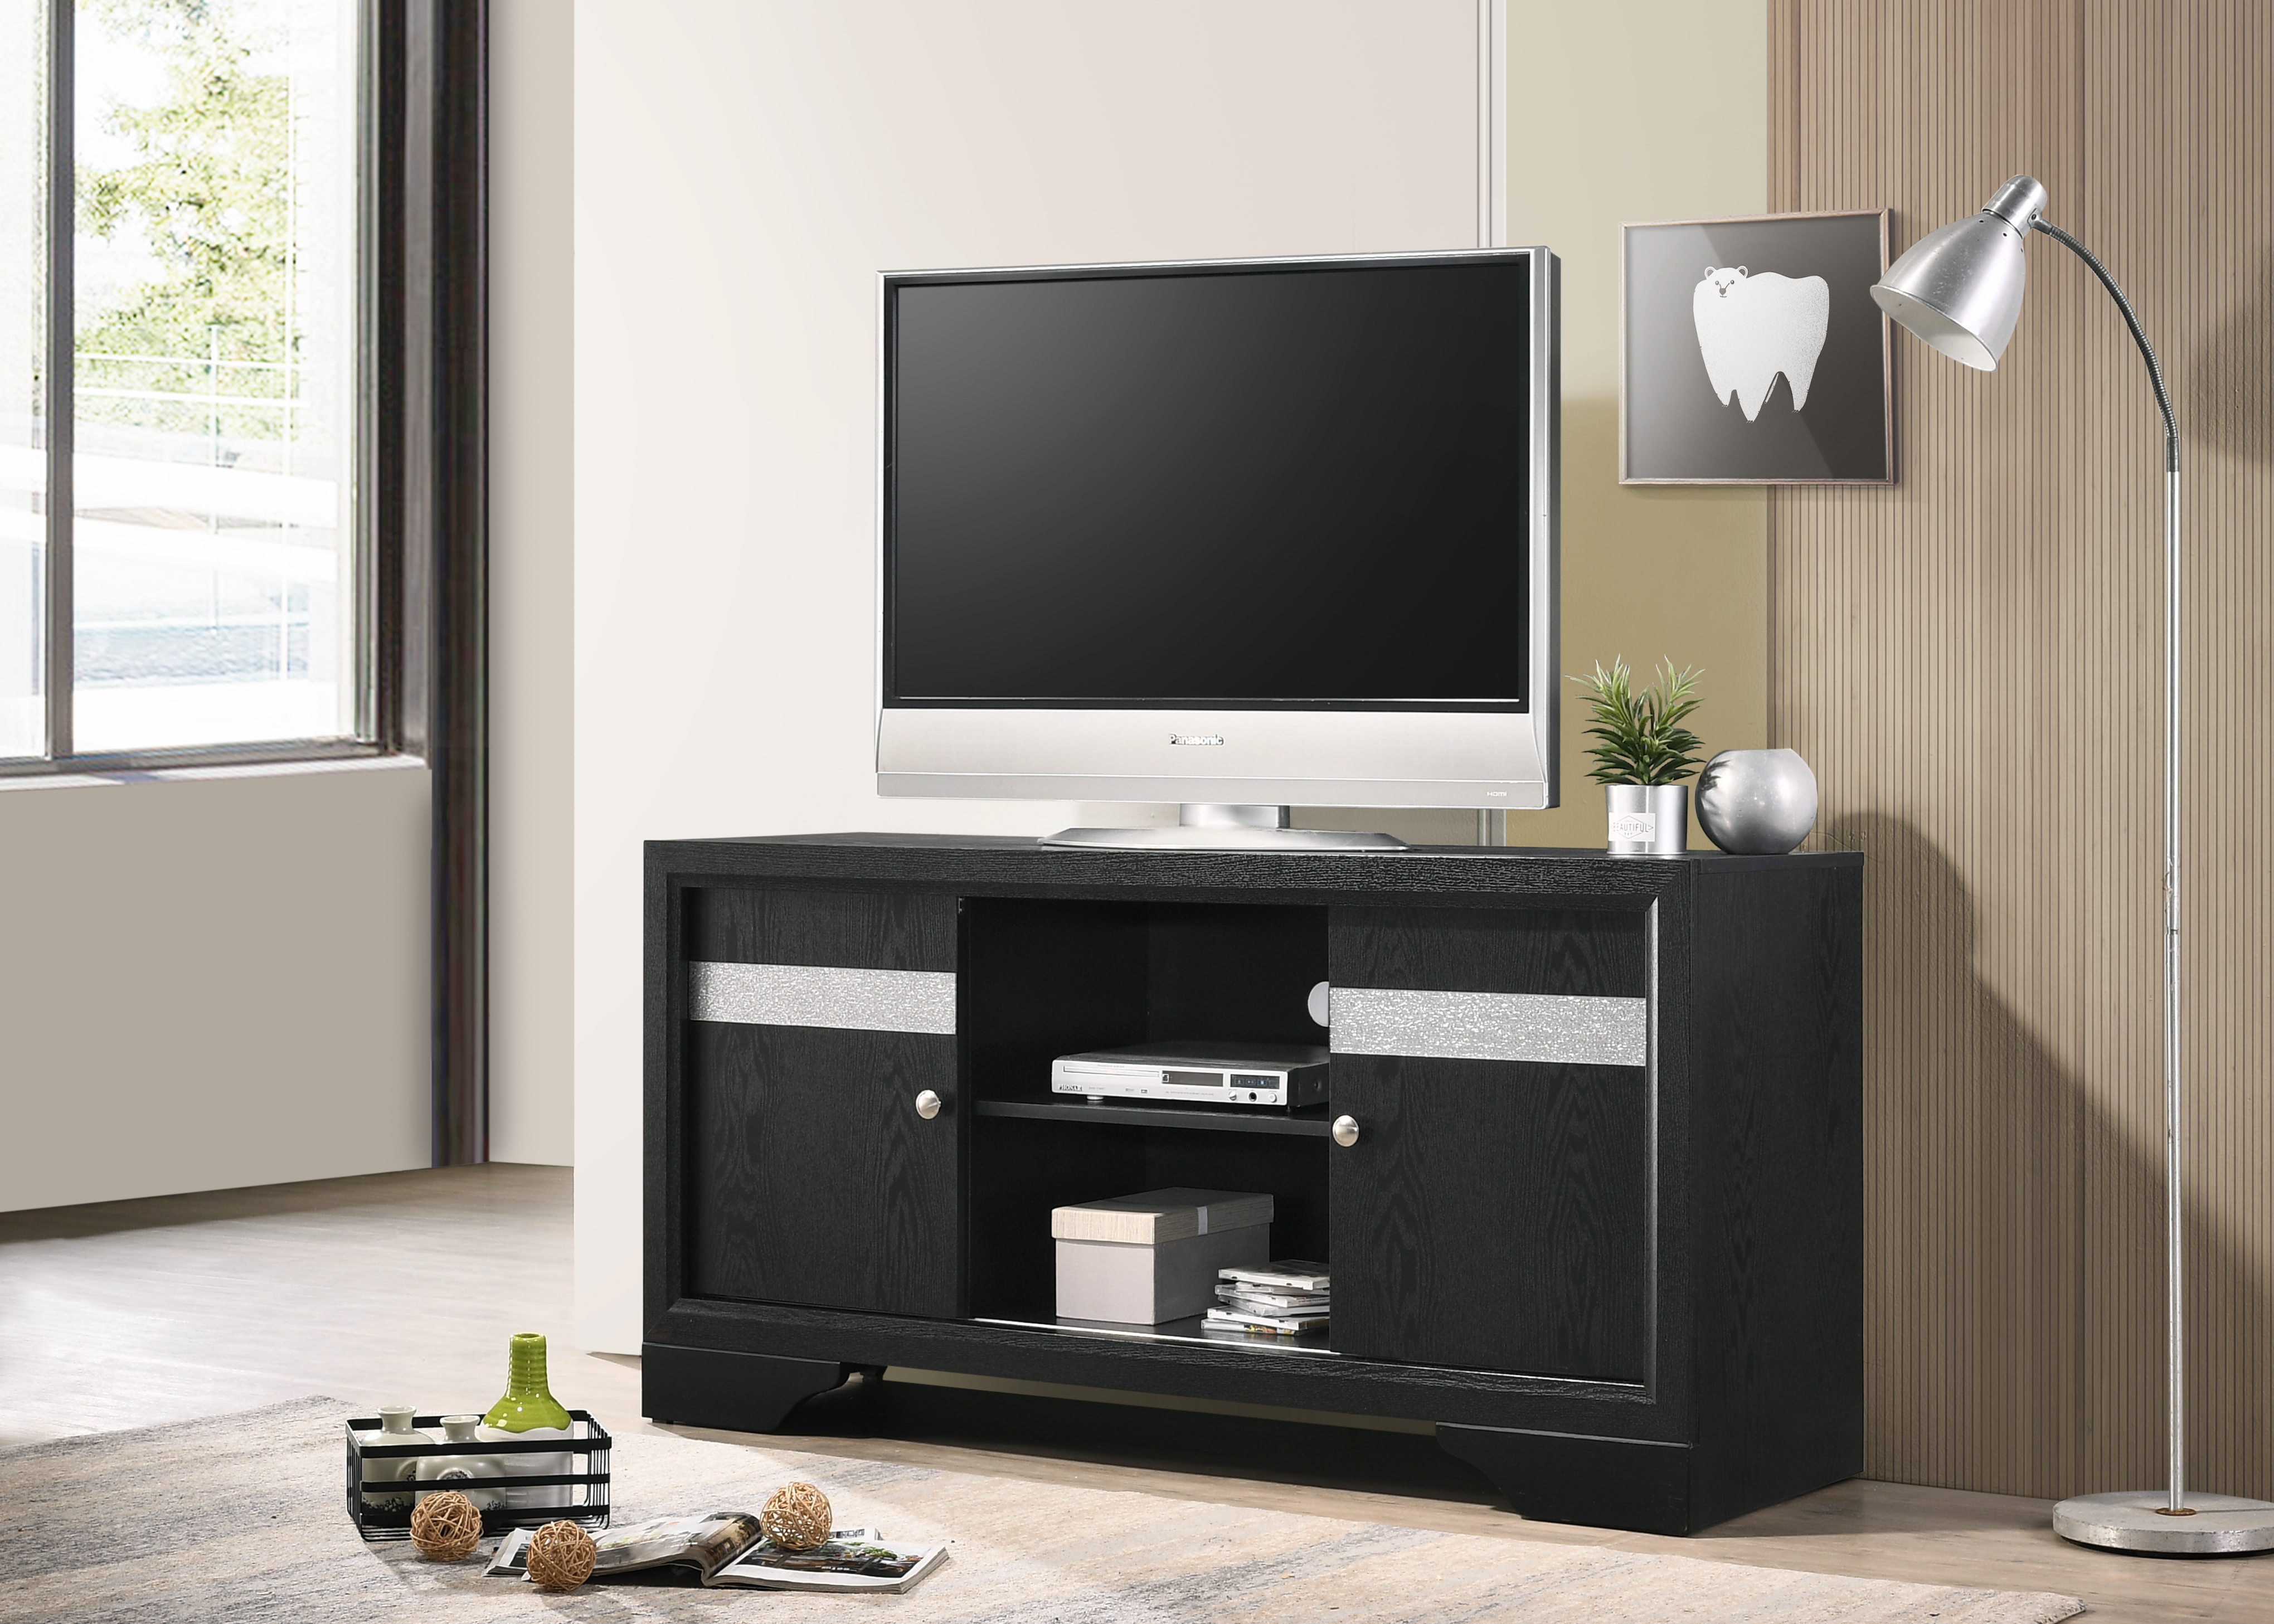 Regata TV Stand by Crown Mark at Johnny Janosik